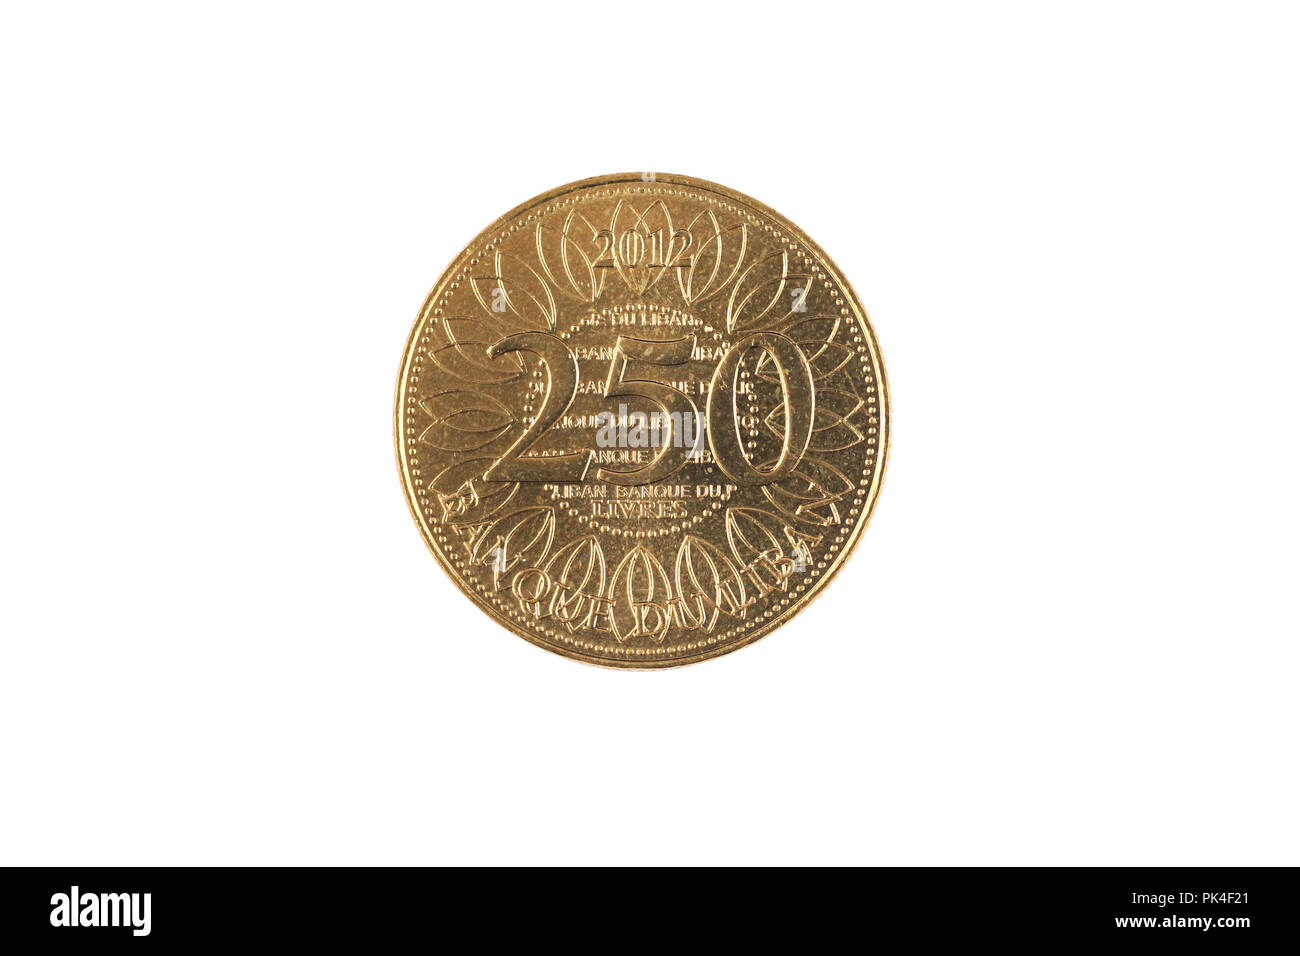 A super macro image of a Lebanese 250 livres coin isolated on a white background - Stock Image